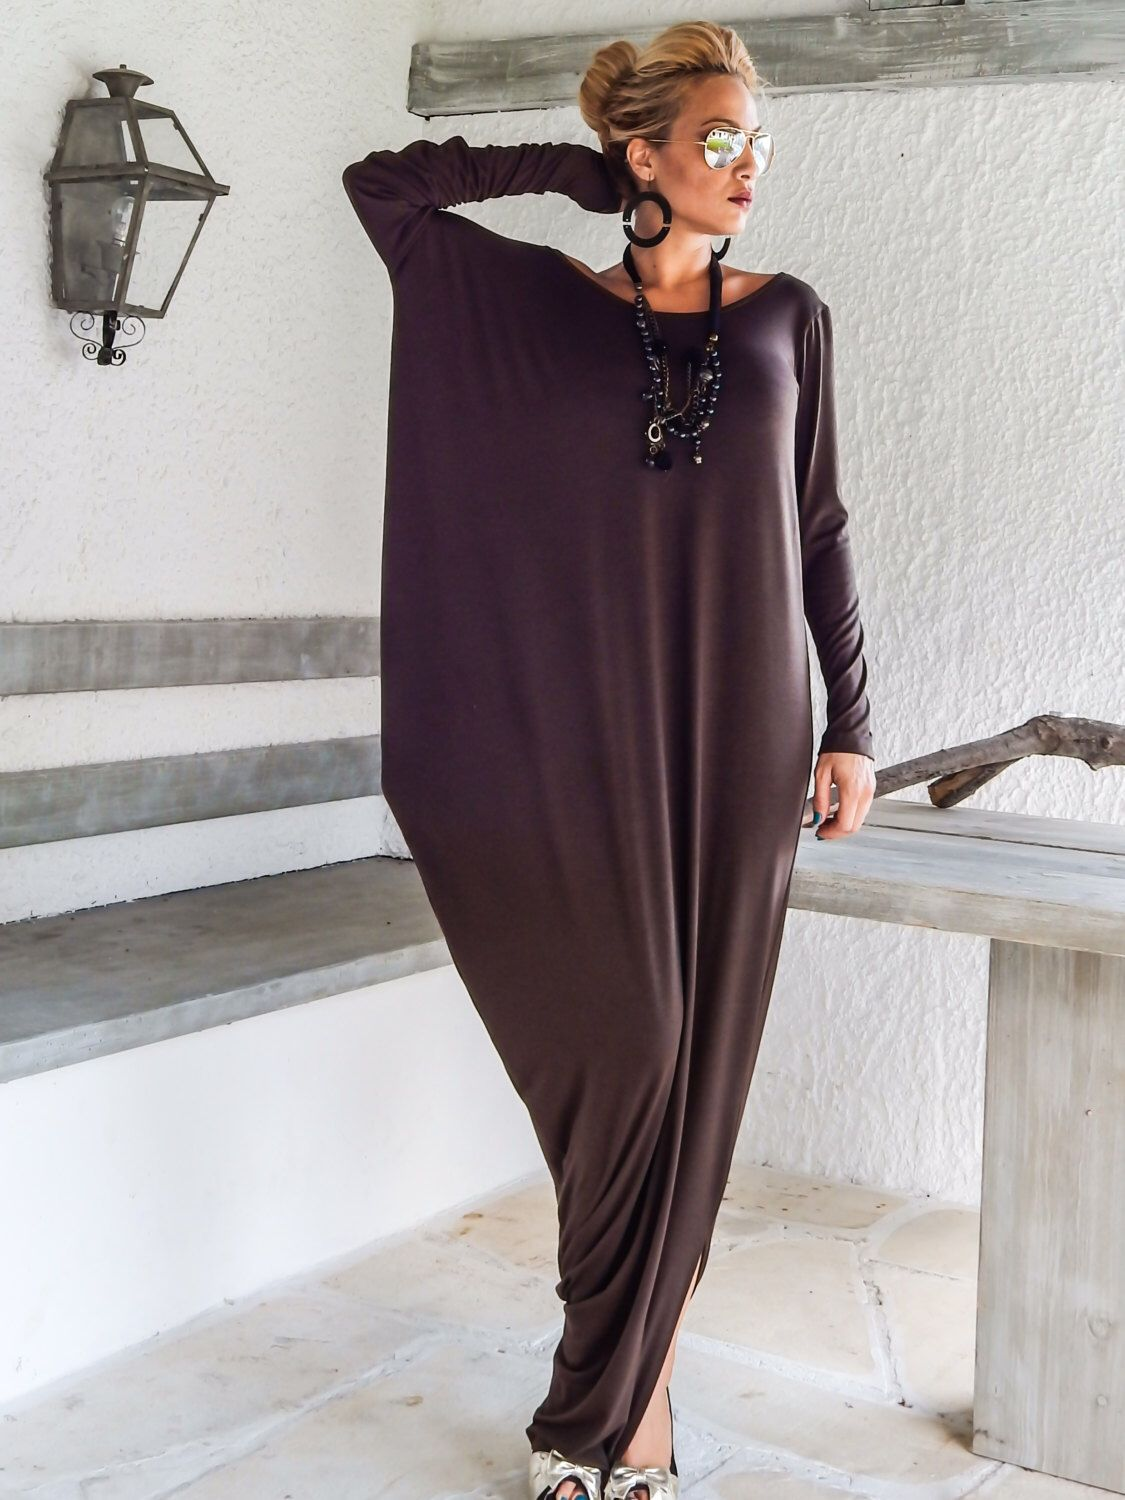 Brown Maxi Long Sleeve Dress / Brown Kaftan / Asymmetric Plus Size Dress / Oversize Loose Dress / #35050 by SynthiaCouture on Etsy https://www.etsy.com/listing/207120775/brown-maxi-long-sleeve-dress-brown